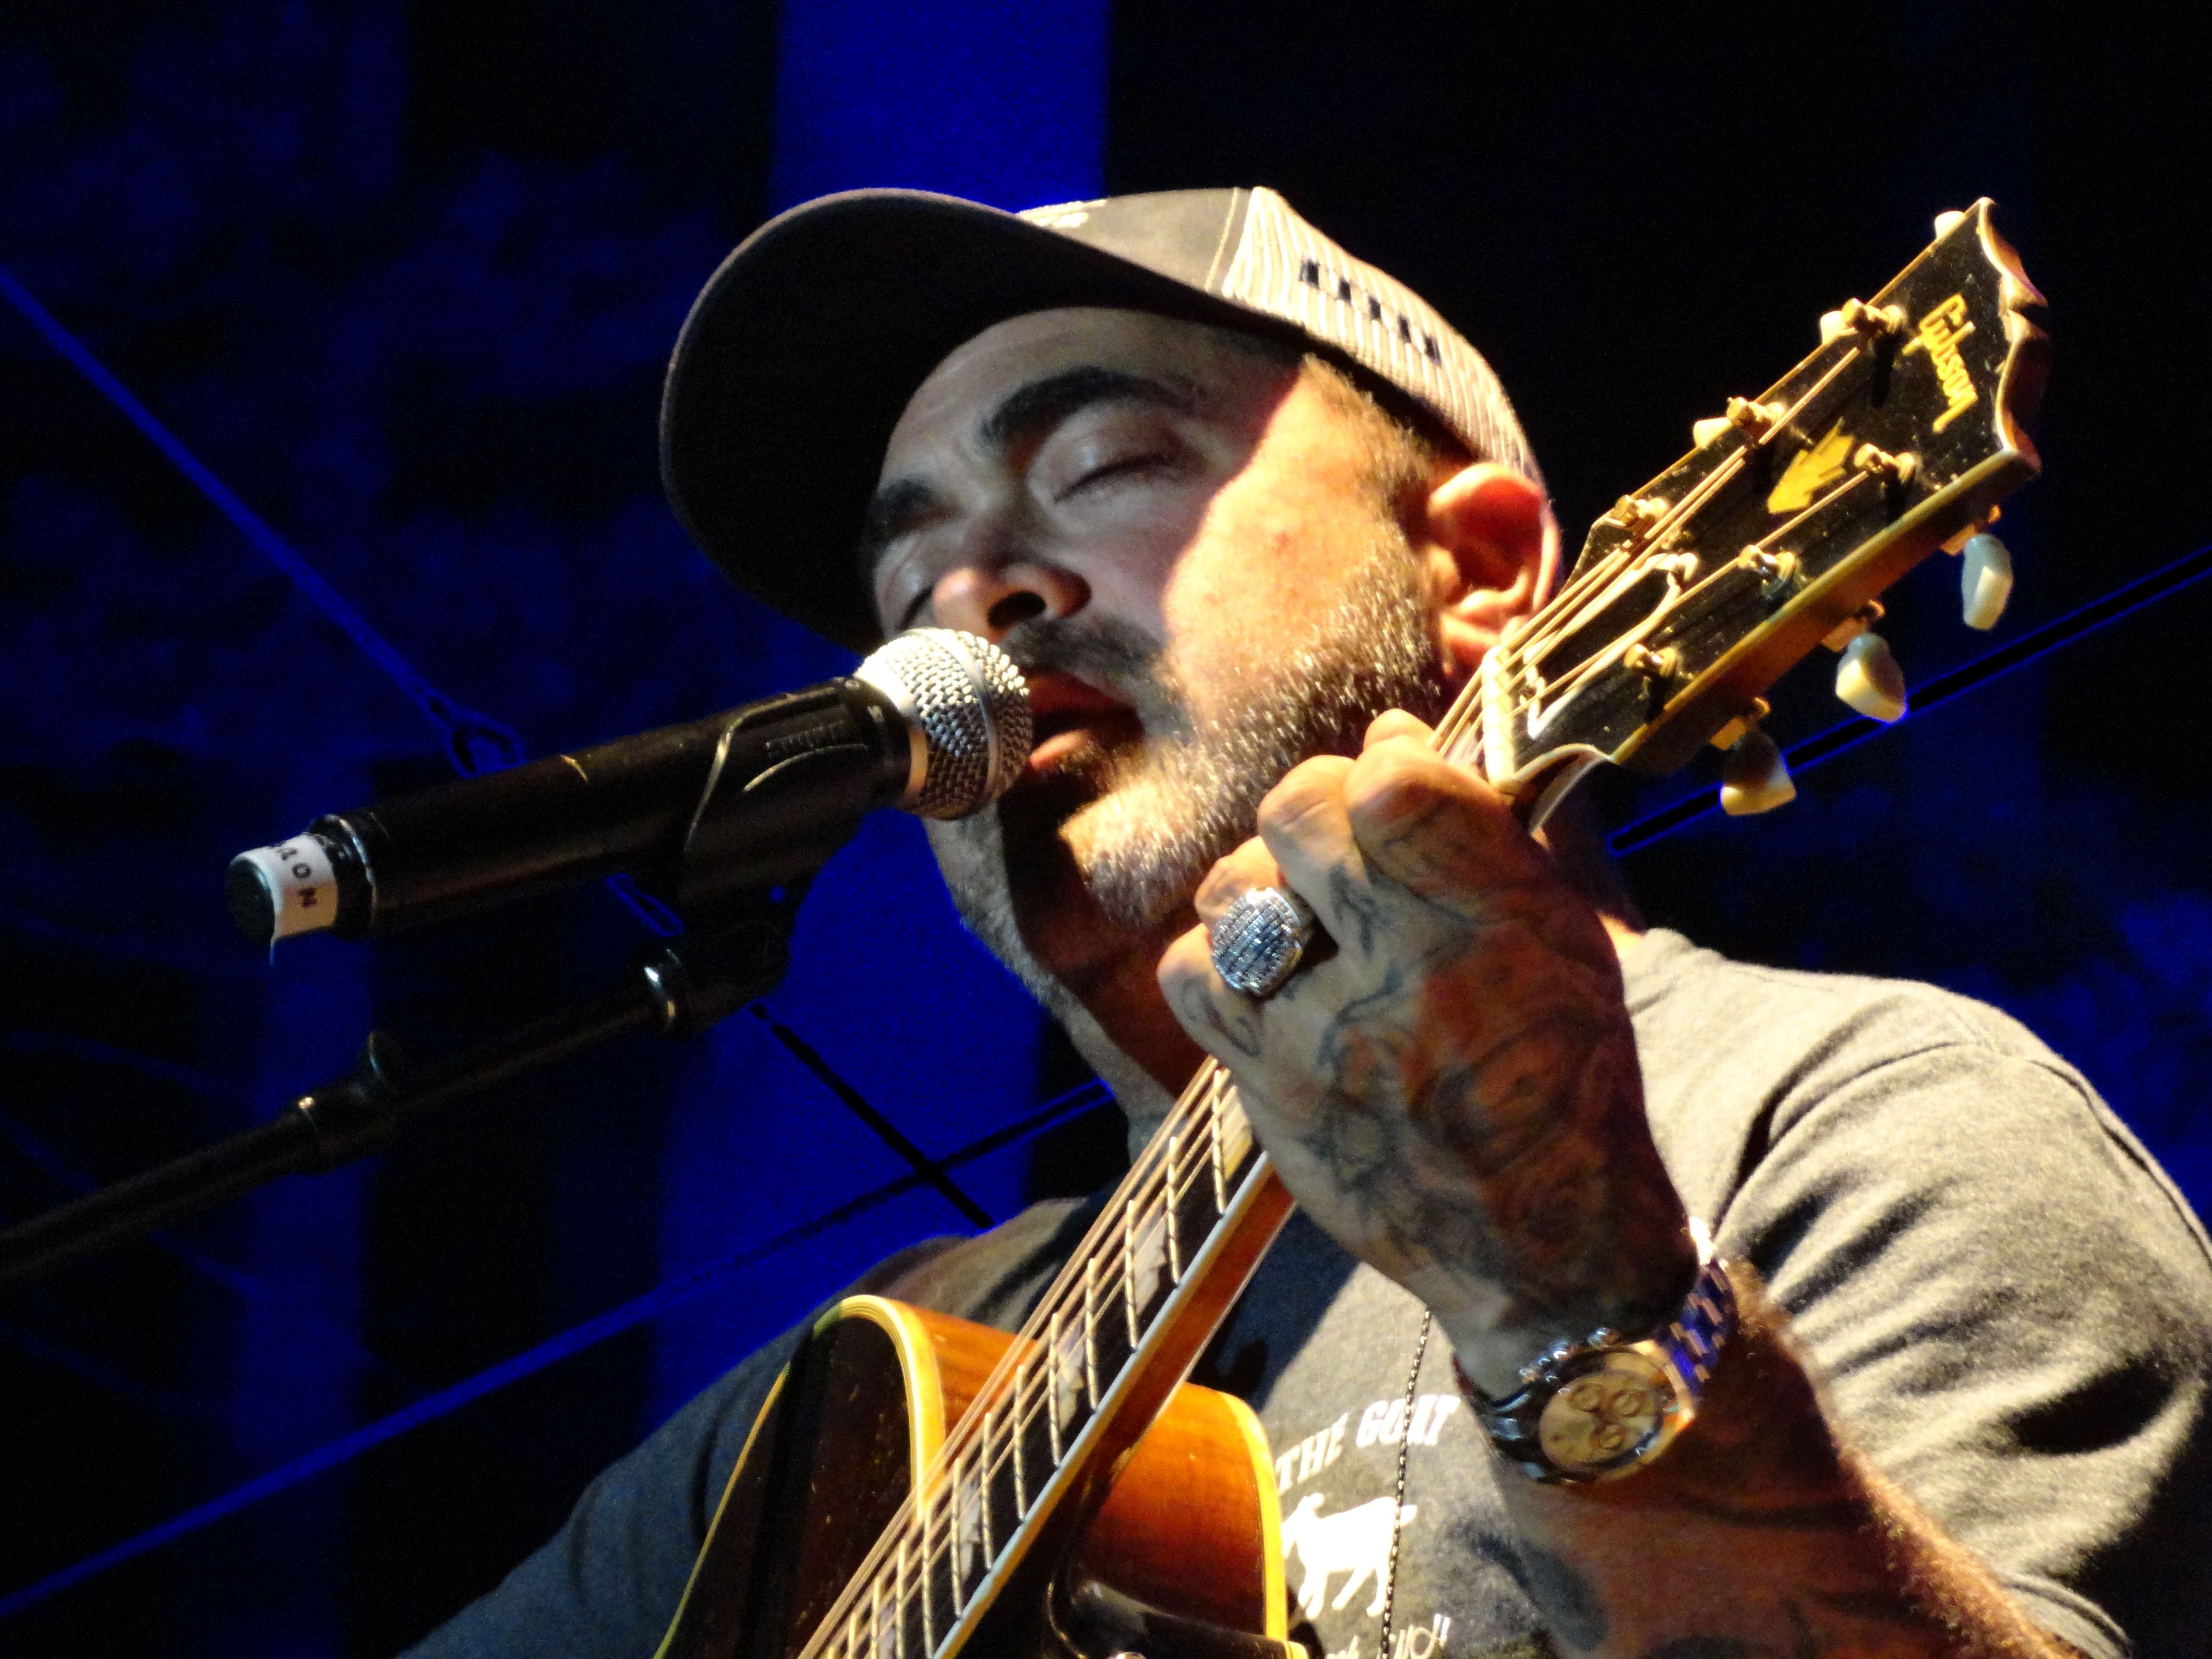 Valley Show Girl: A Jam Session in the Forest With Staind Singer Aaron Lewis